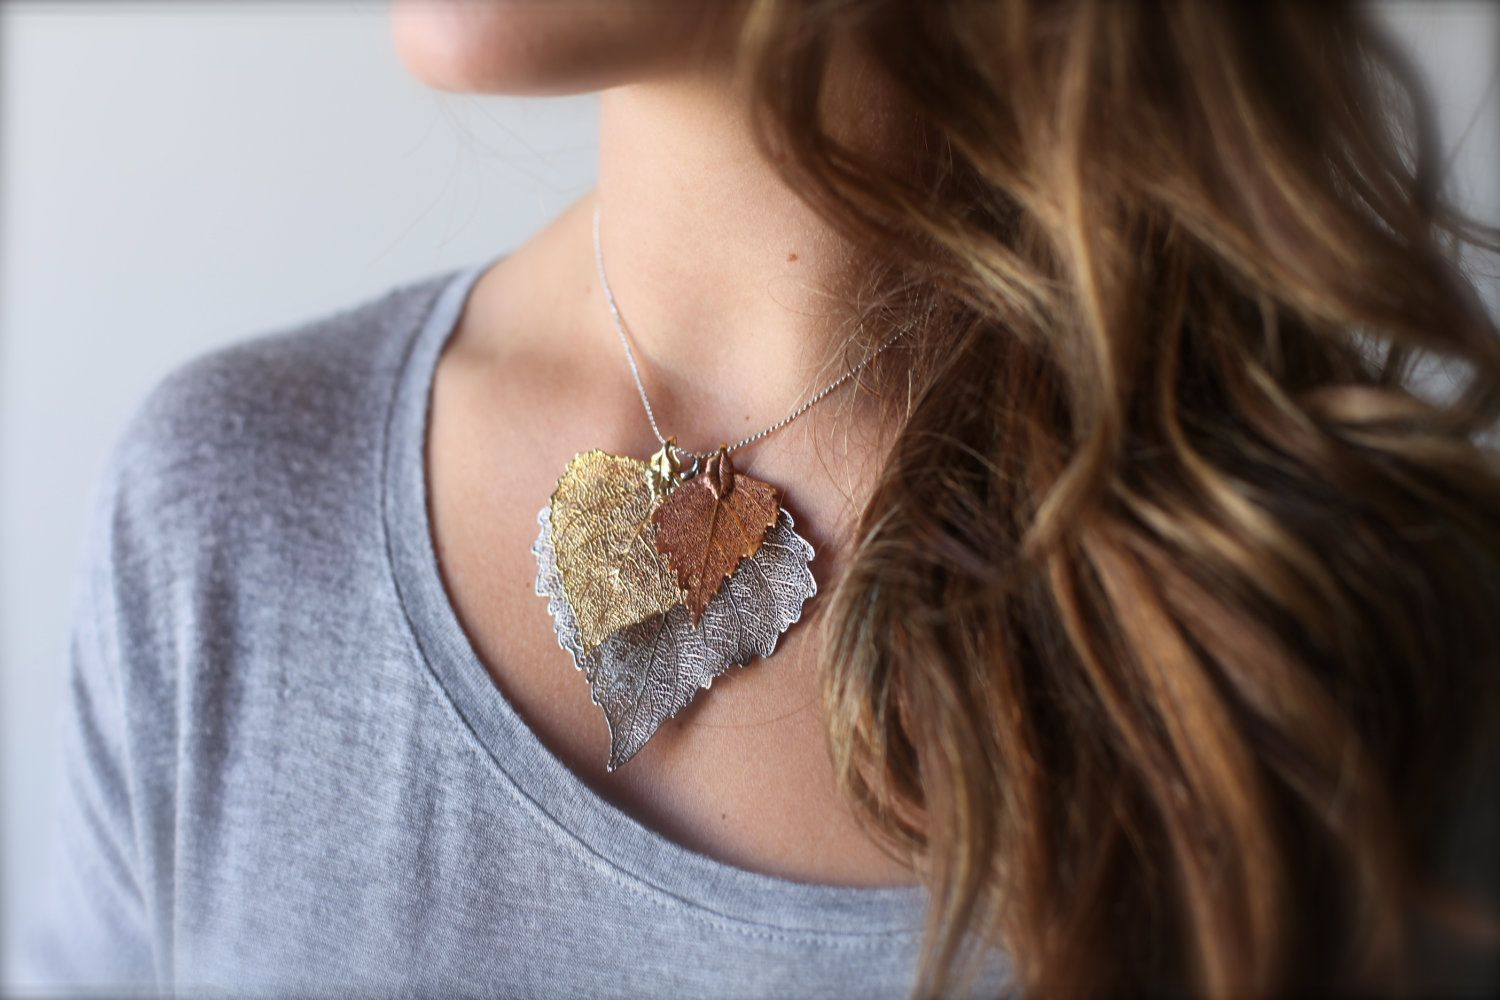 leaf necklace, gold leaf necklace, tri color dipped 24k gold, silver, and copper leaf pendant necklace and chain, CLUSTER. $50.00, via Etsy.